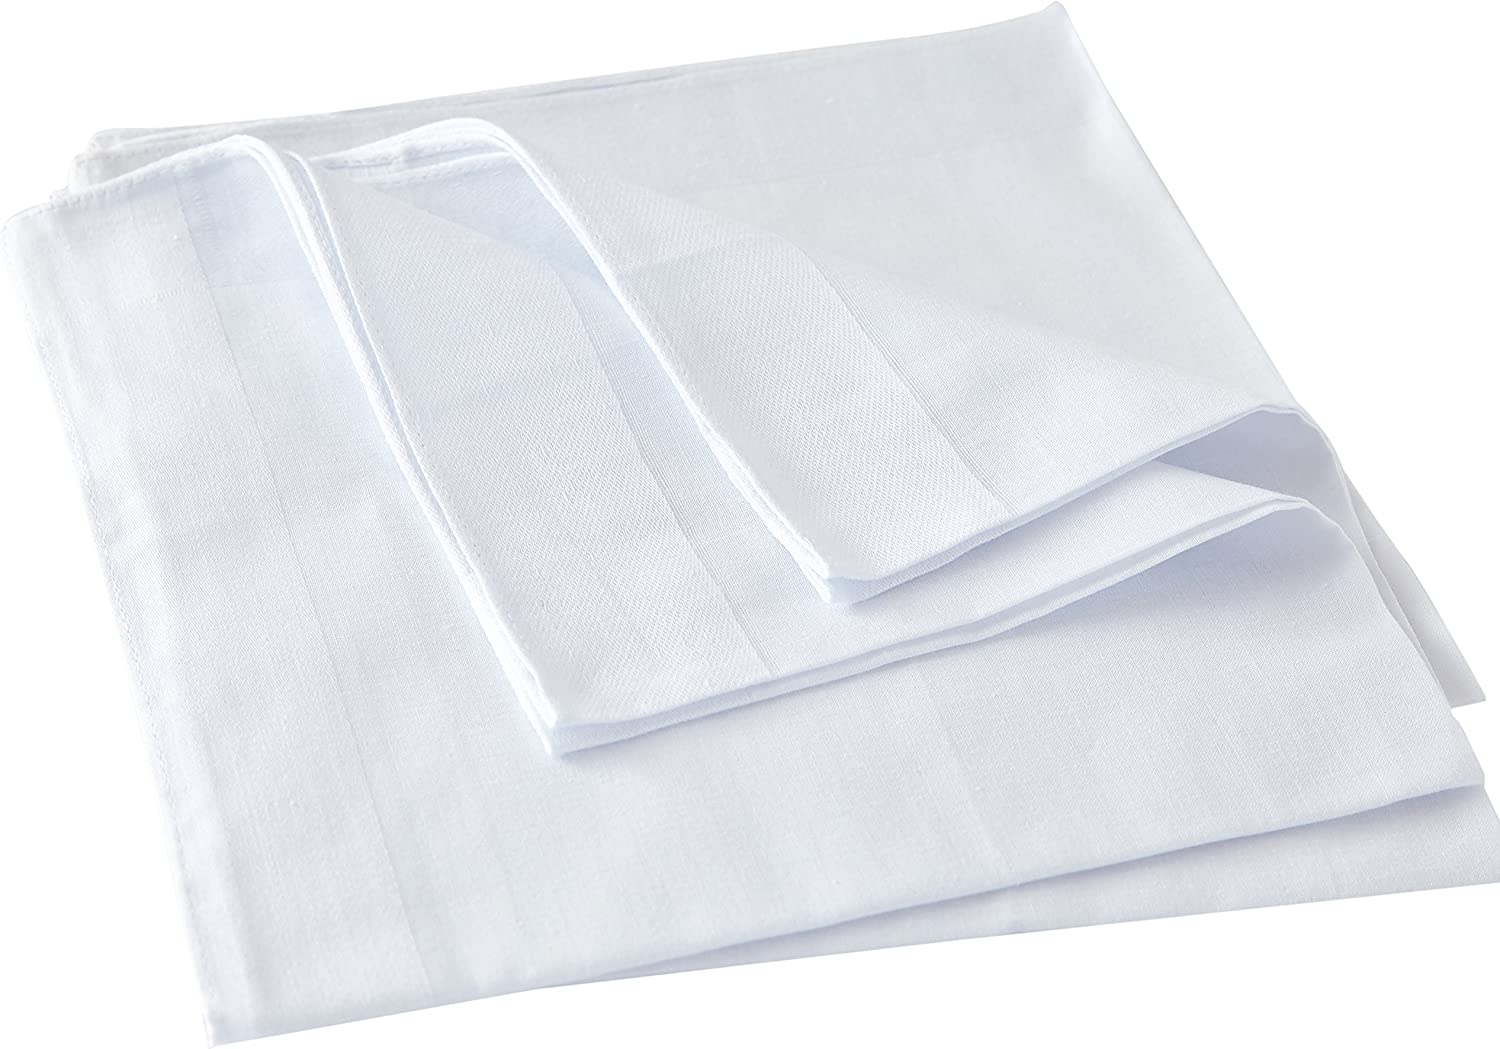 Mens White Handkerchiefs,100/% Soft Cotton Hankie